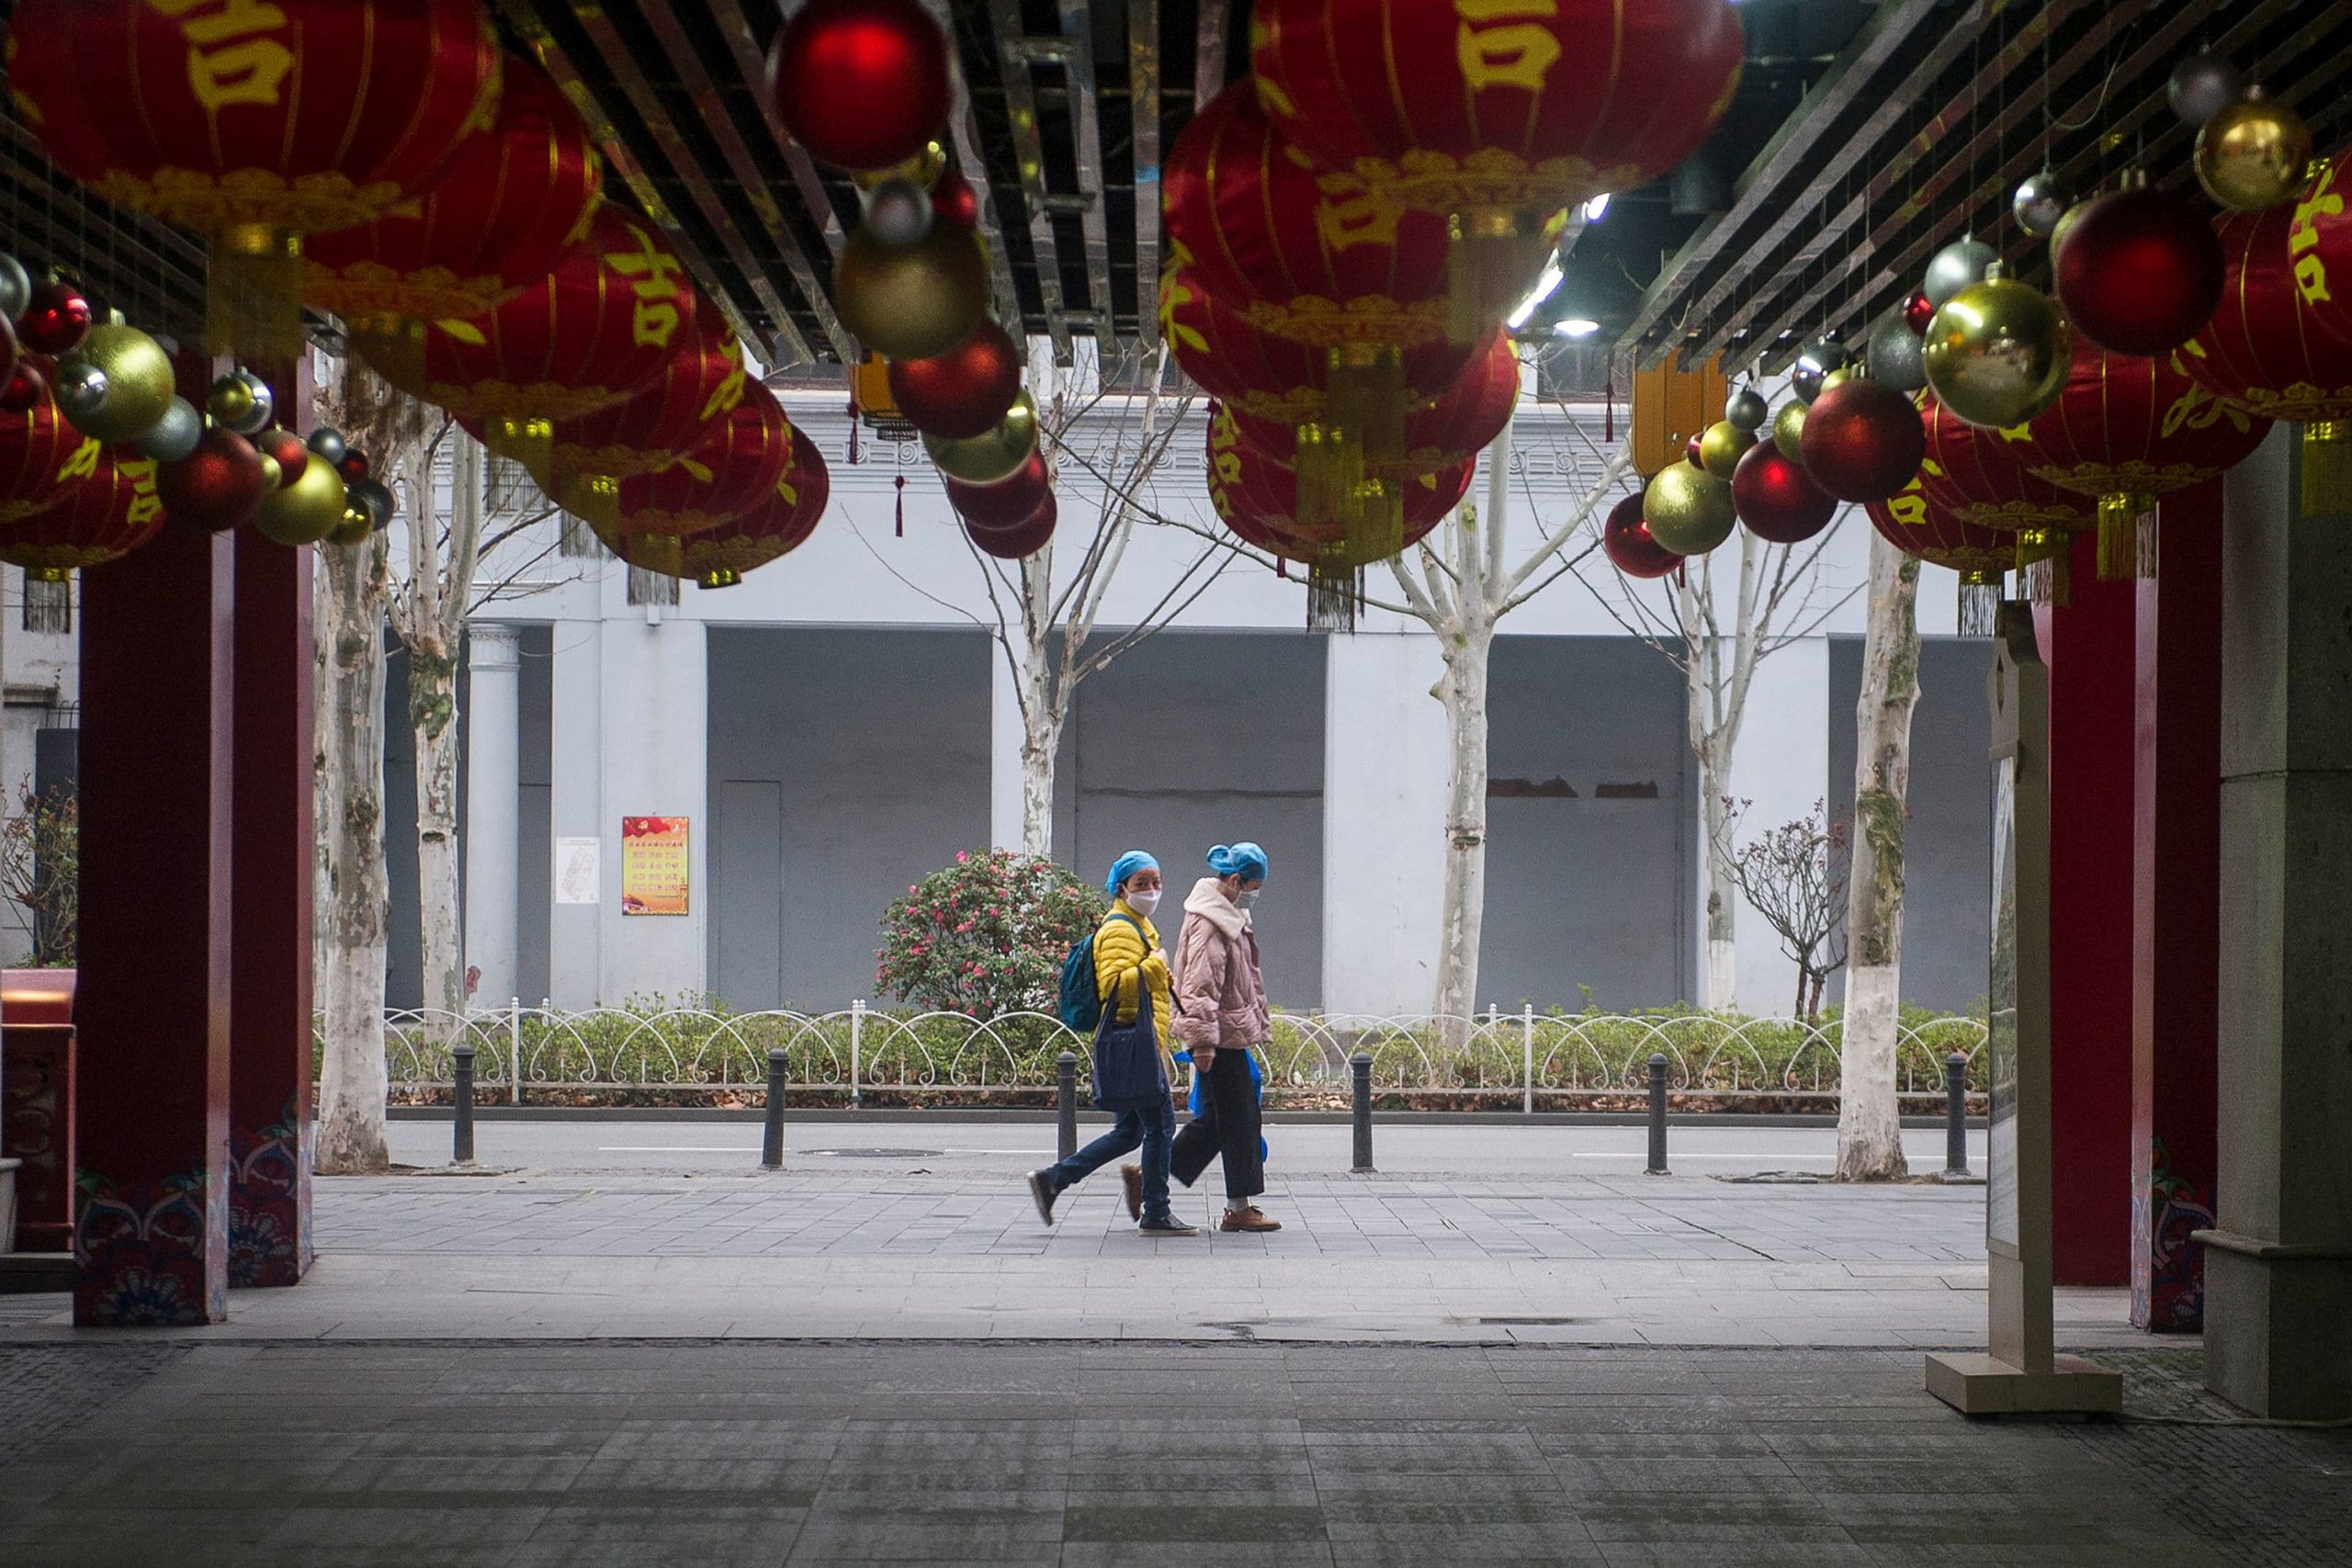 The coronavirus outbreak may have a two-quarter hit on China's economy, says Stephen Roach